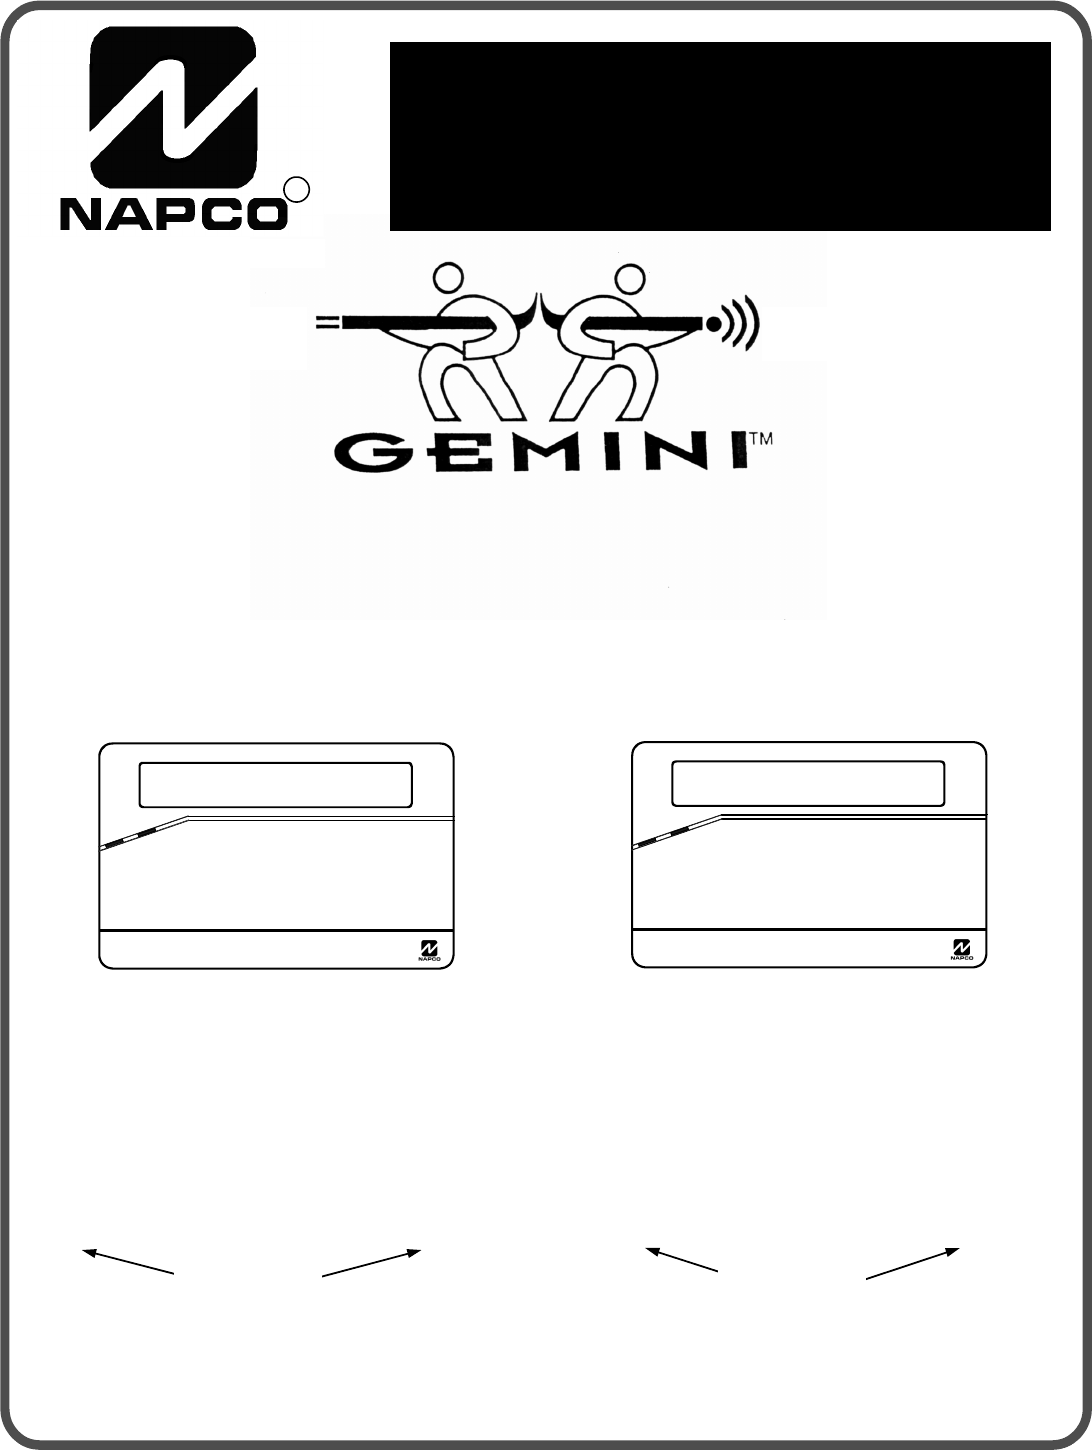 napco security technologies home security system gem p3200 user guide manualsonline